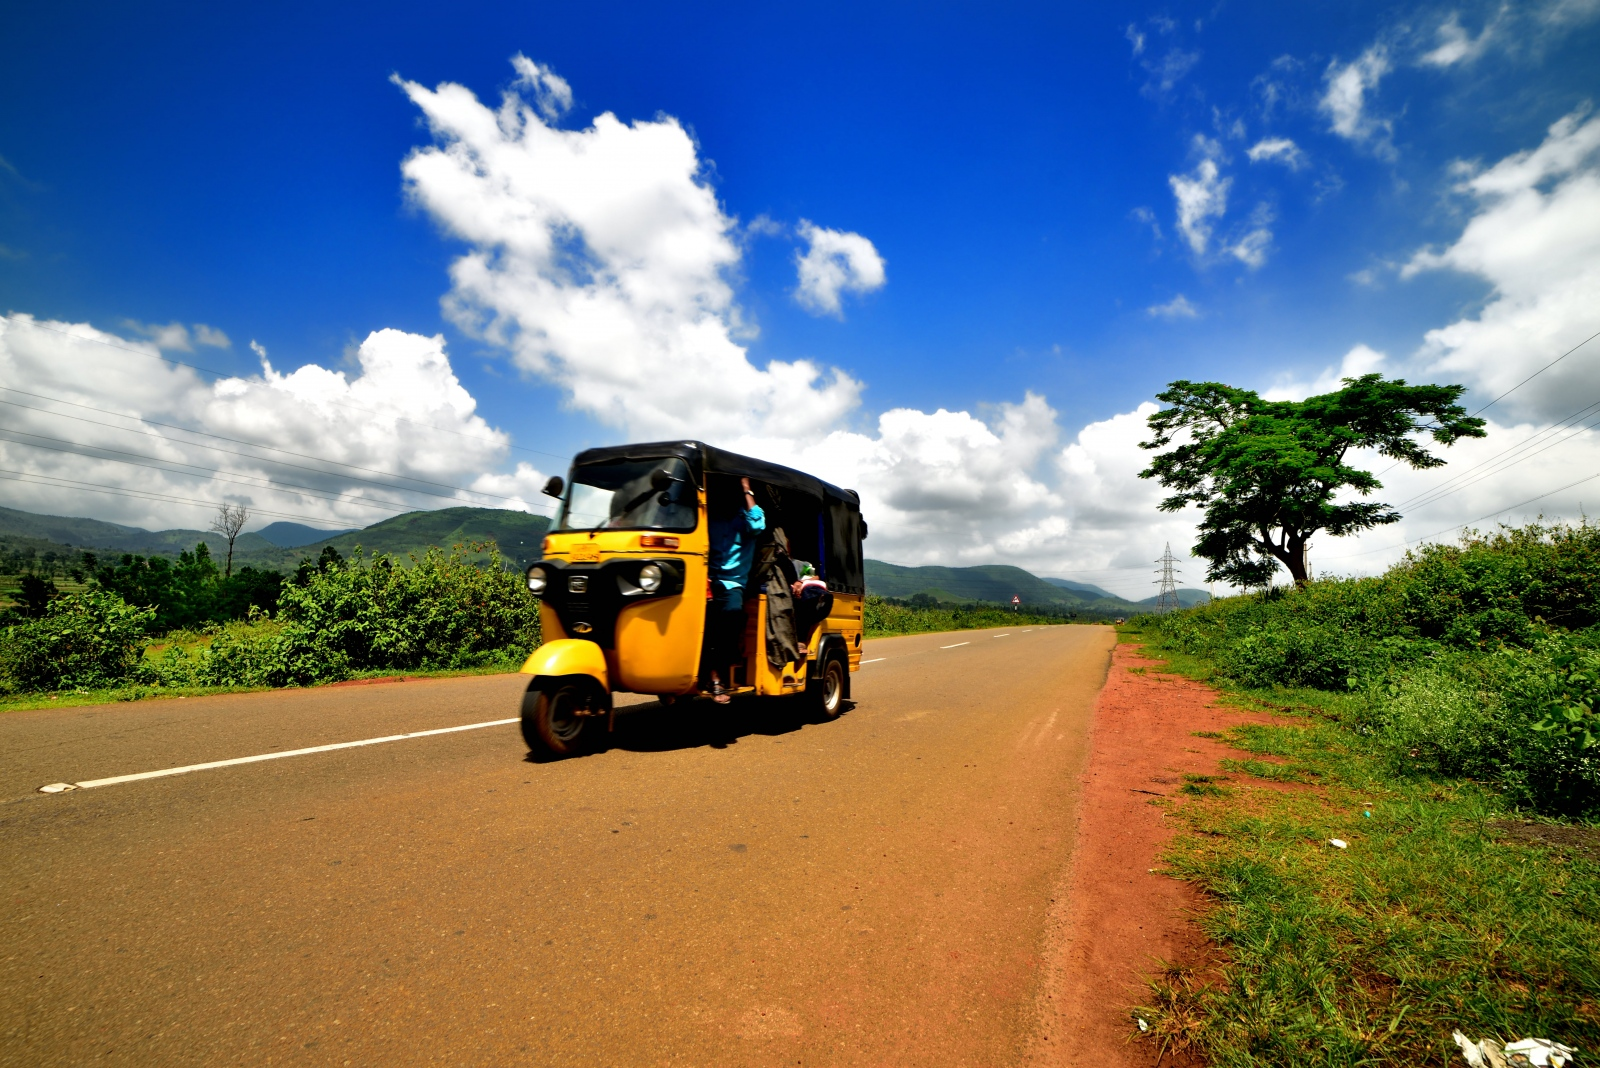 Photography image - Journey in South India